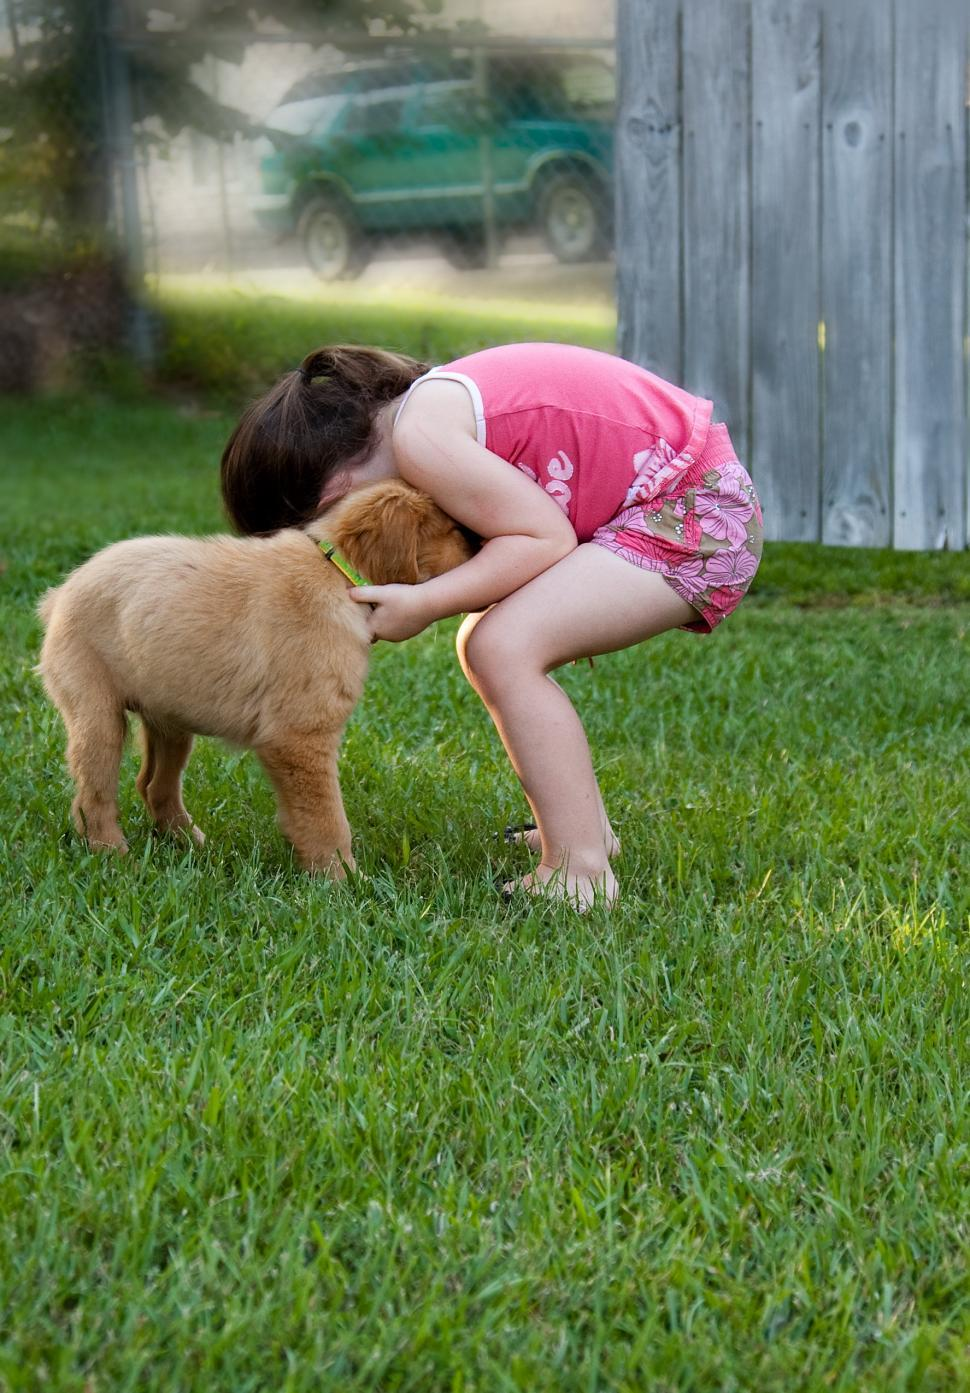 Free image of young girl playing with a golden Retriever